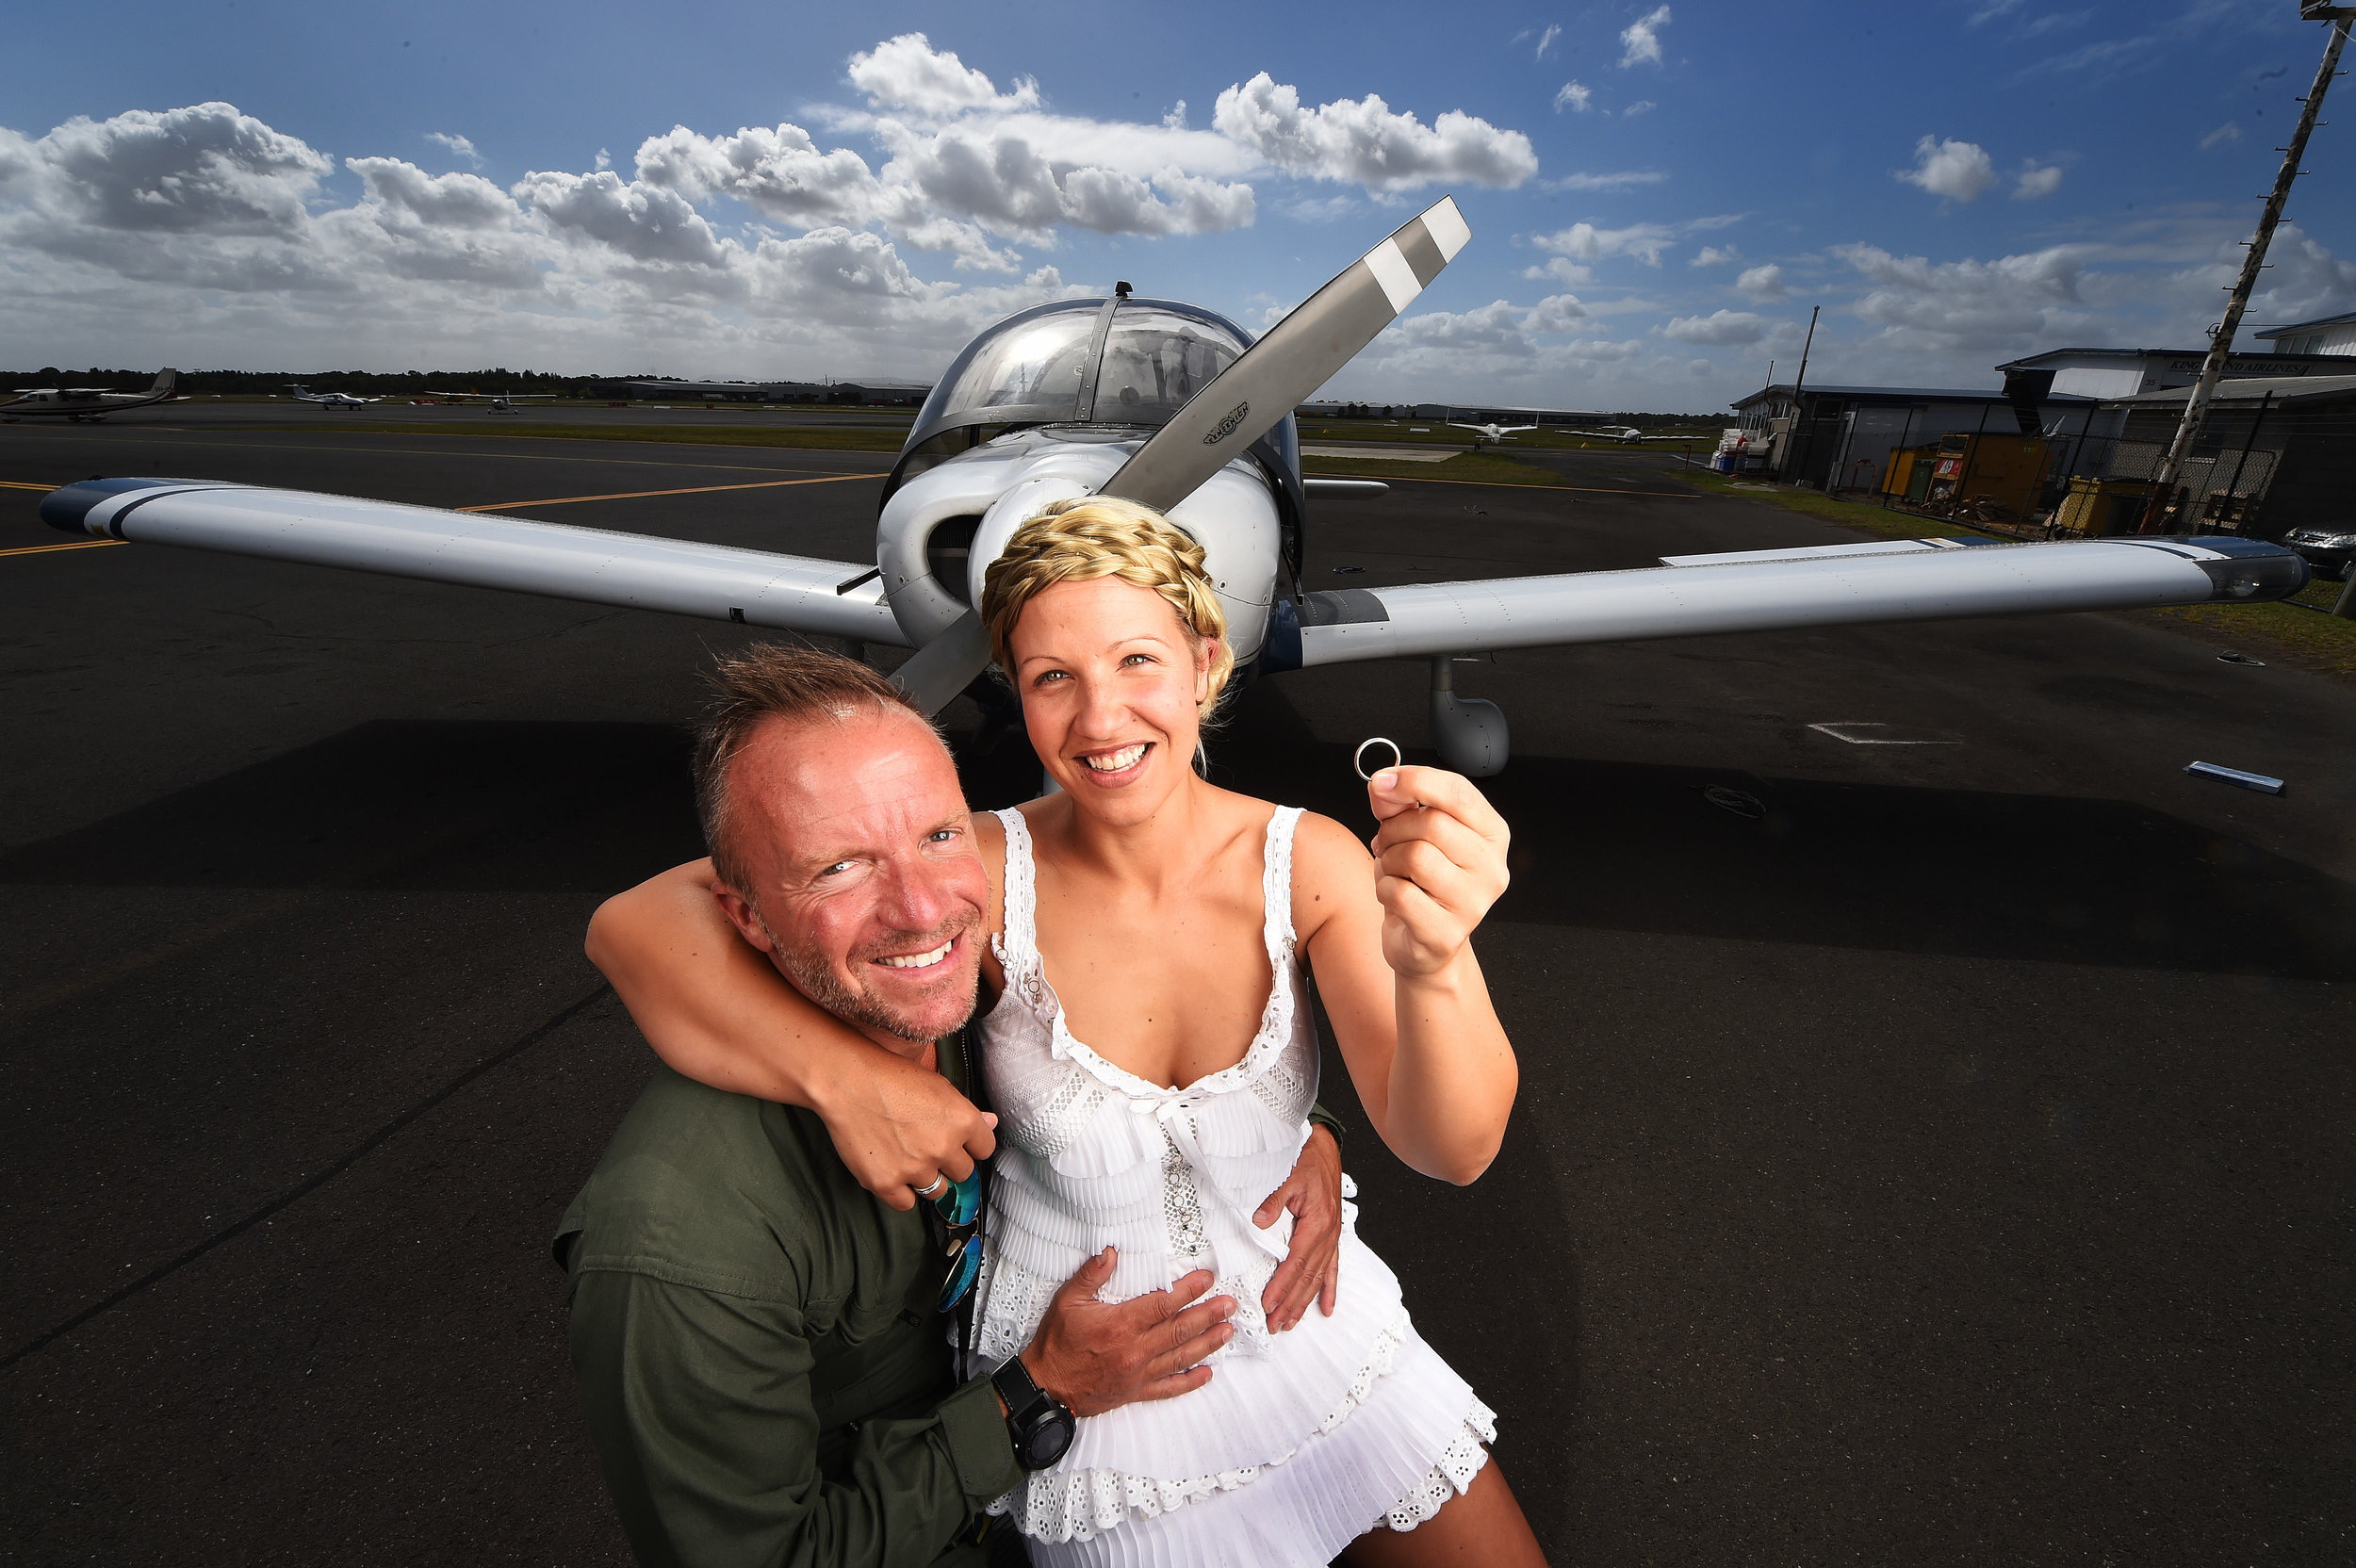 CHP_Export_134125320_Kristy Frogatt and her husband Darren She proposed to him in 2012 while in.jpg